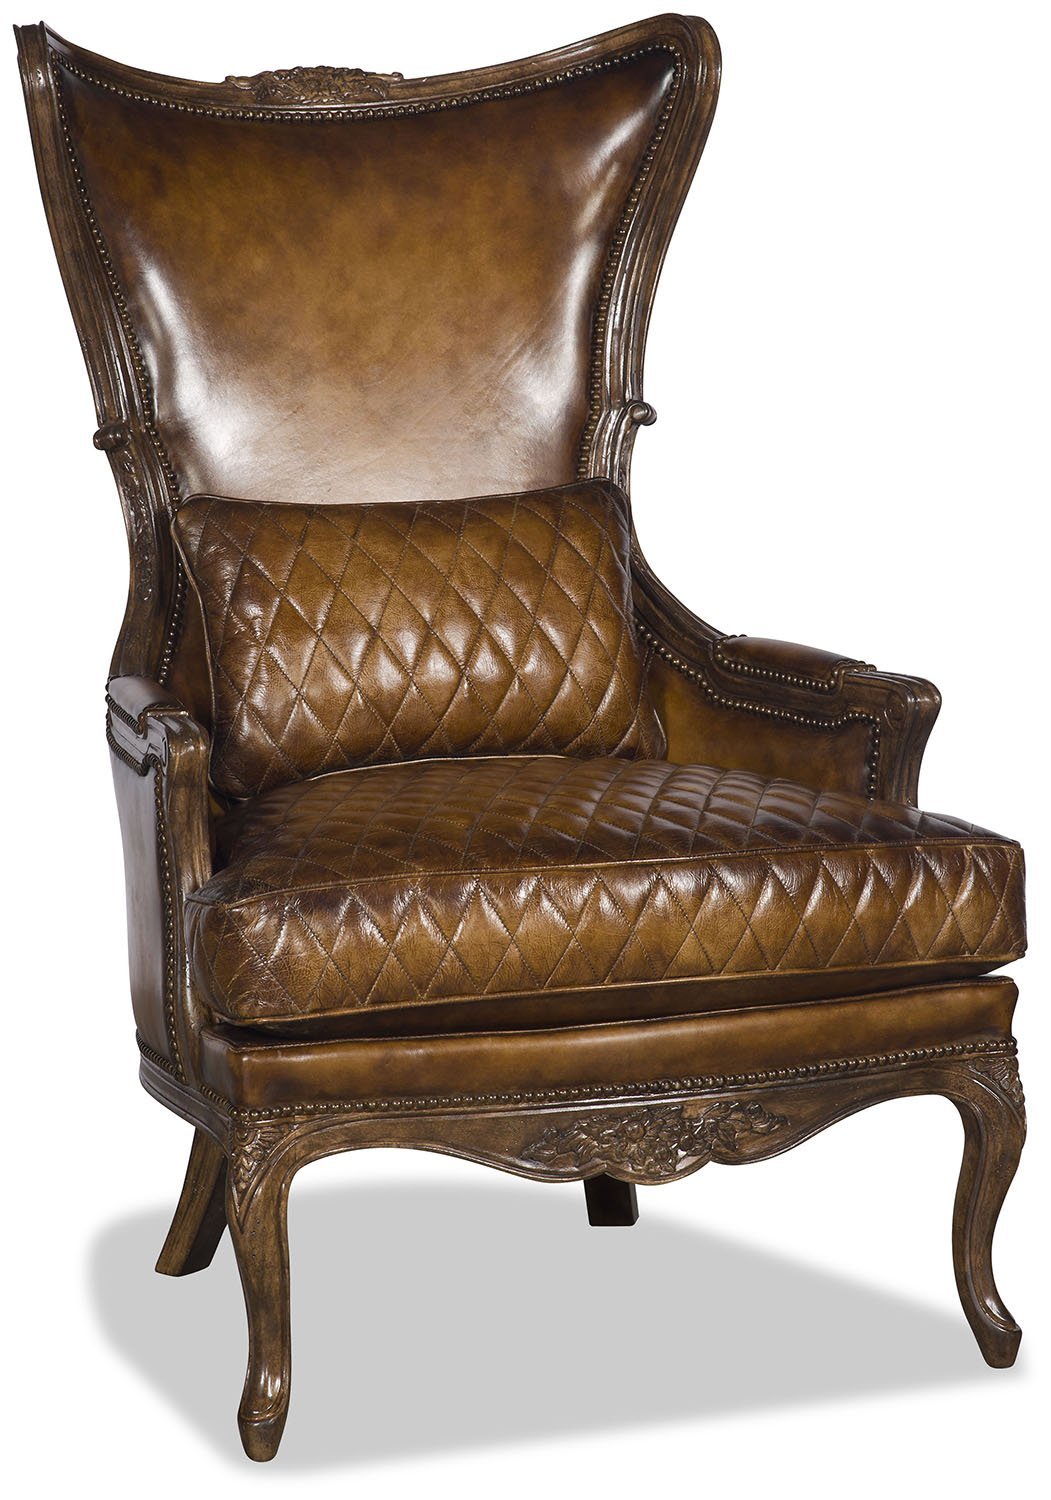 Danica Leather Chair - Chestnut